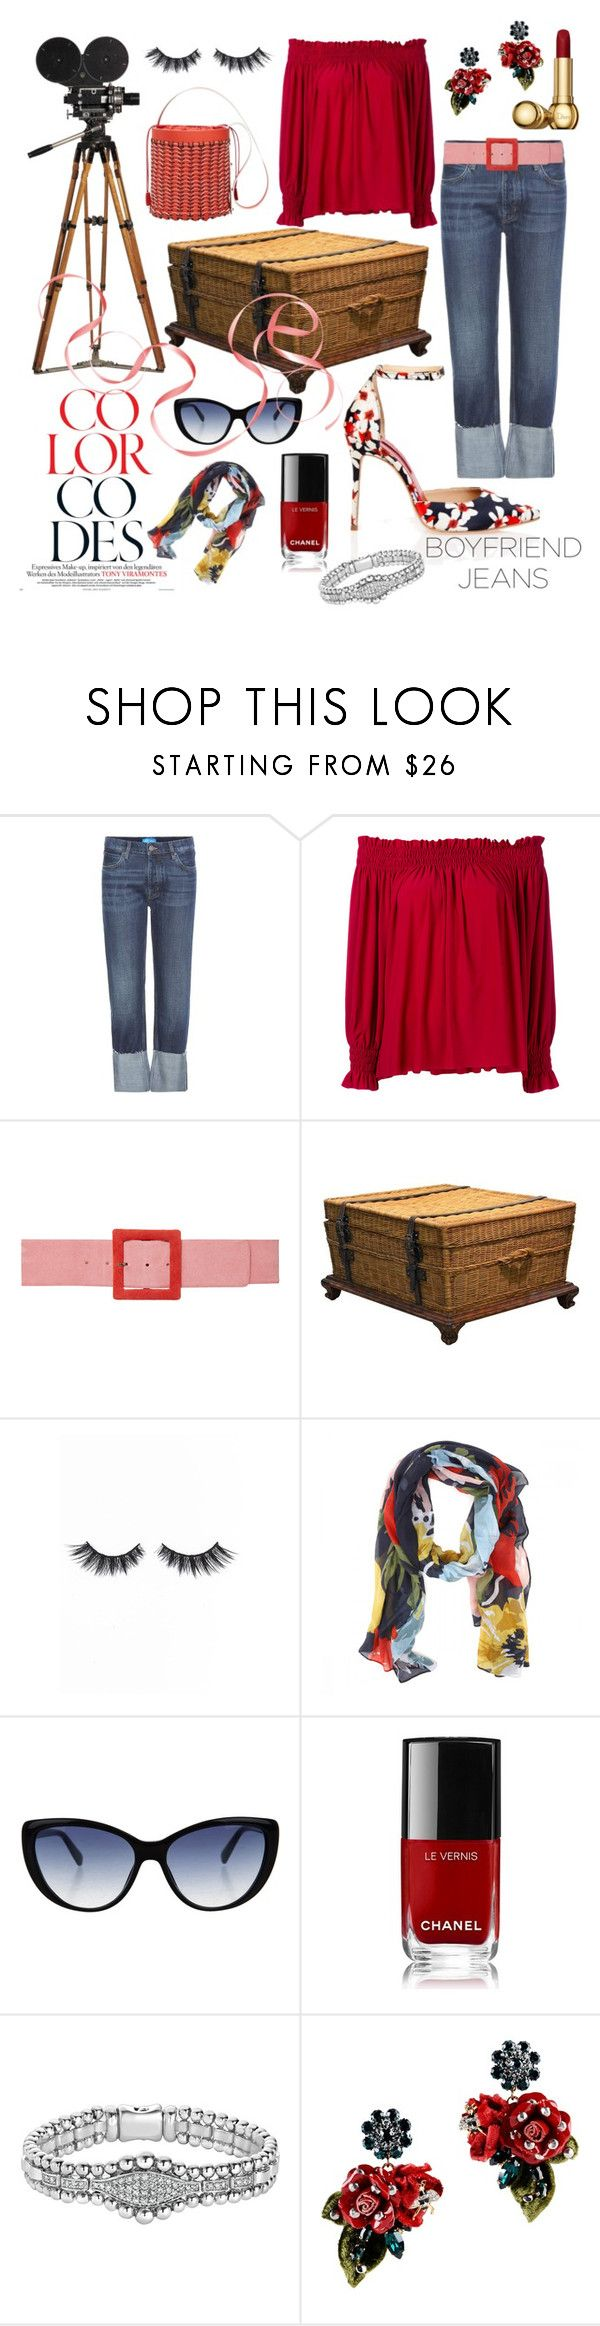 """""""COLORFUL"""" by tinagarrison ❤ liked on Polyvore featuring M.i.h Jeans, Norma Kamali, Carolina Herrera, Ralph Lauren, Violet Voss, Joules, Kate Spade, Chanel, Lagos and Dolce&Gabbana"""